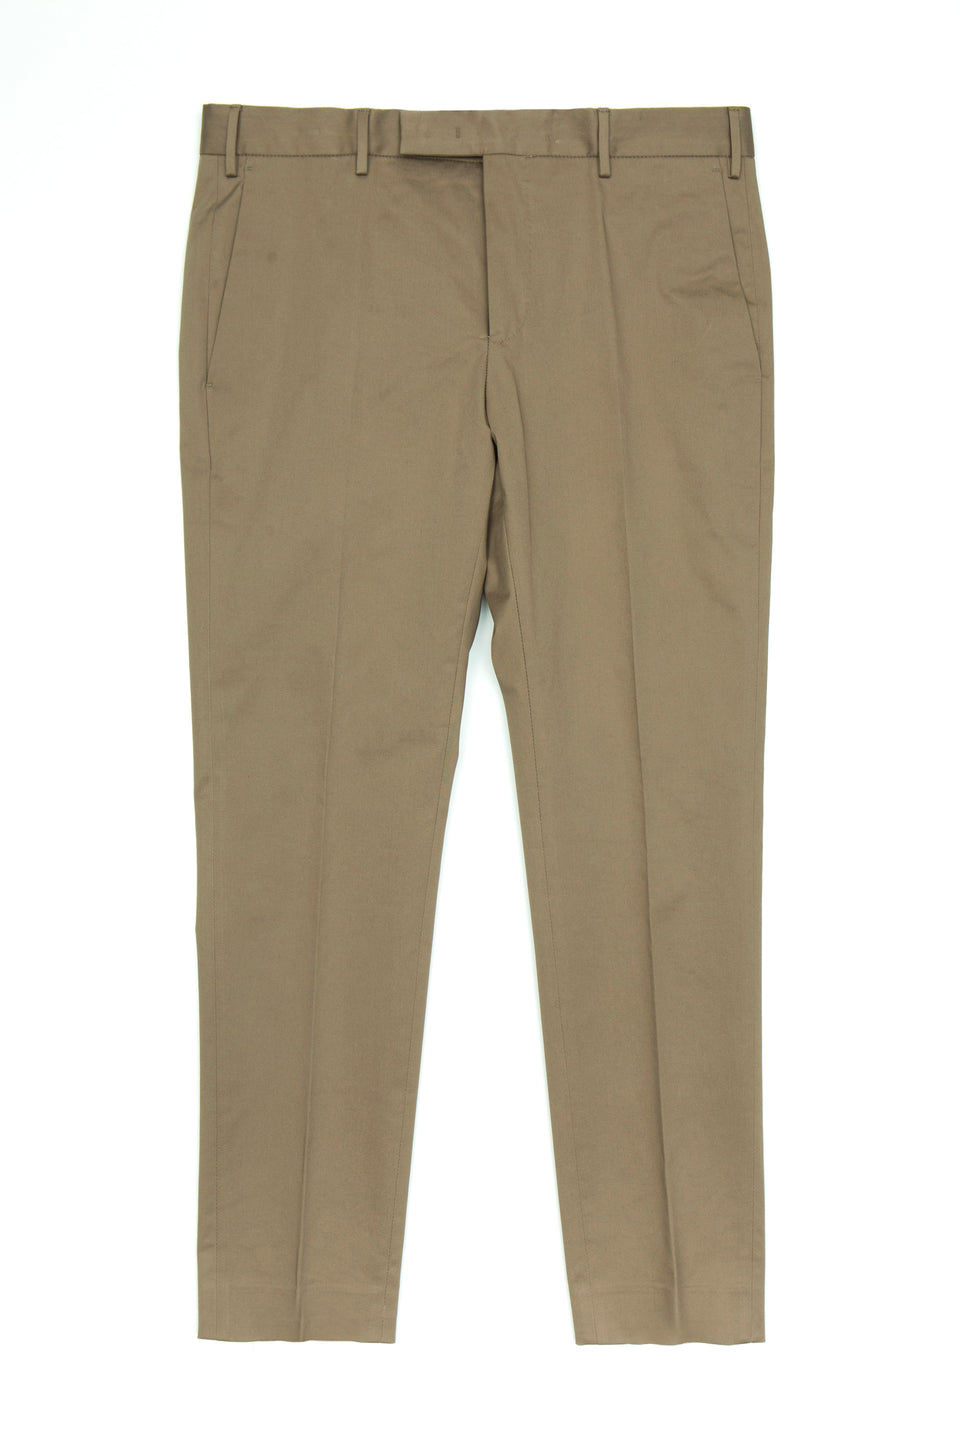 Dieci - F.Front - Stretch Cotton